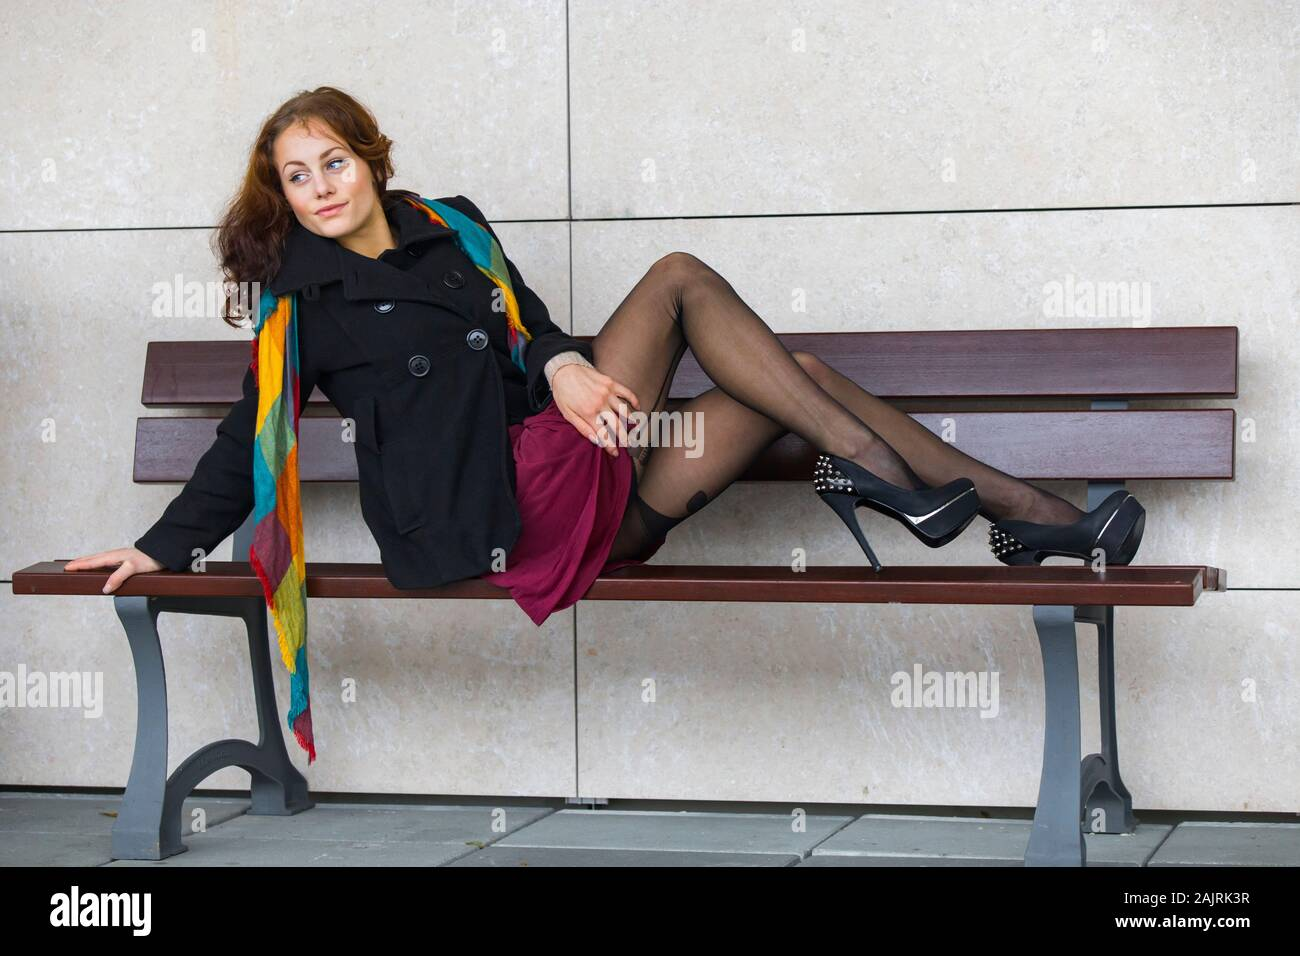 Sitting on wooden bench wearing sexy legware looking away aside sideview side-view provocation alluring sexual allurement lure luring Stock Photo